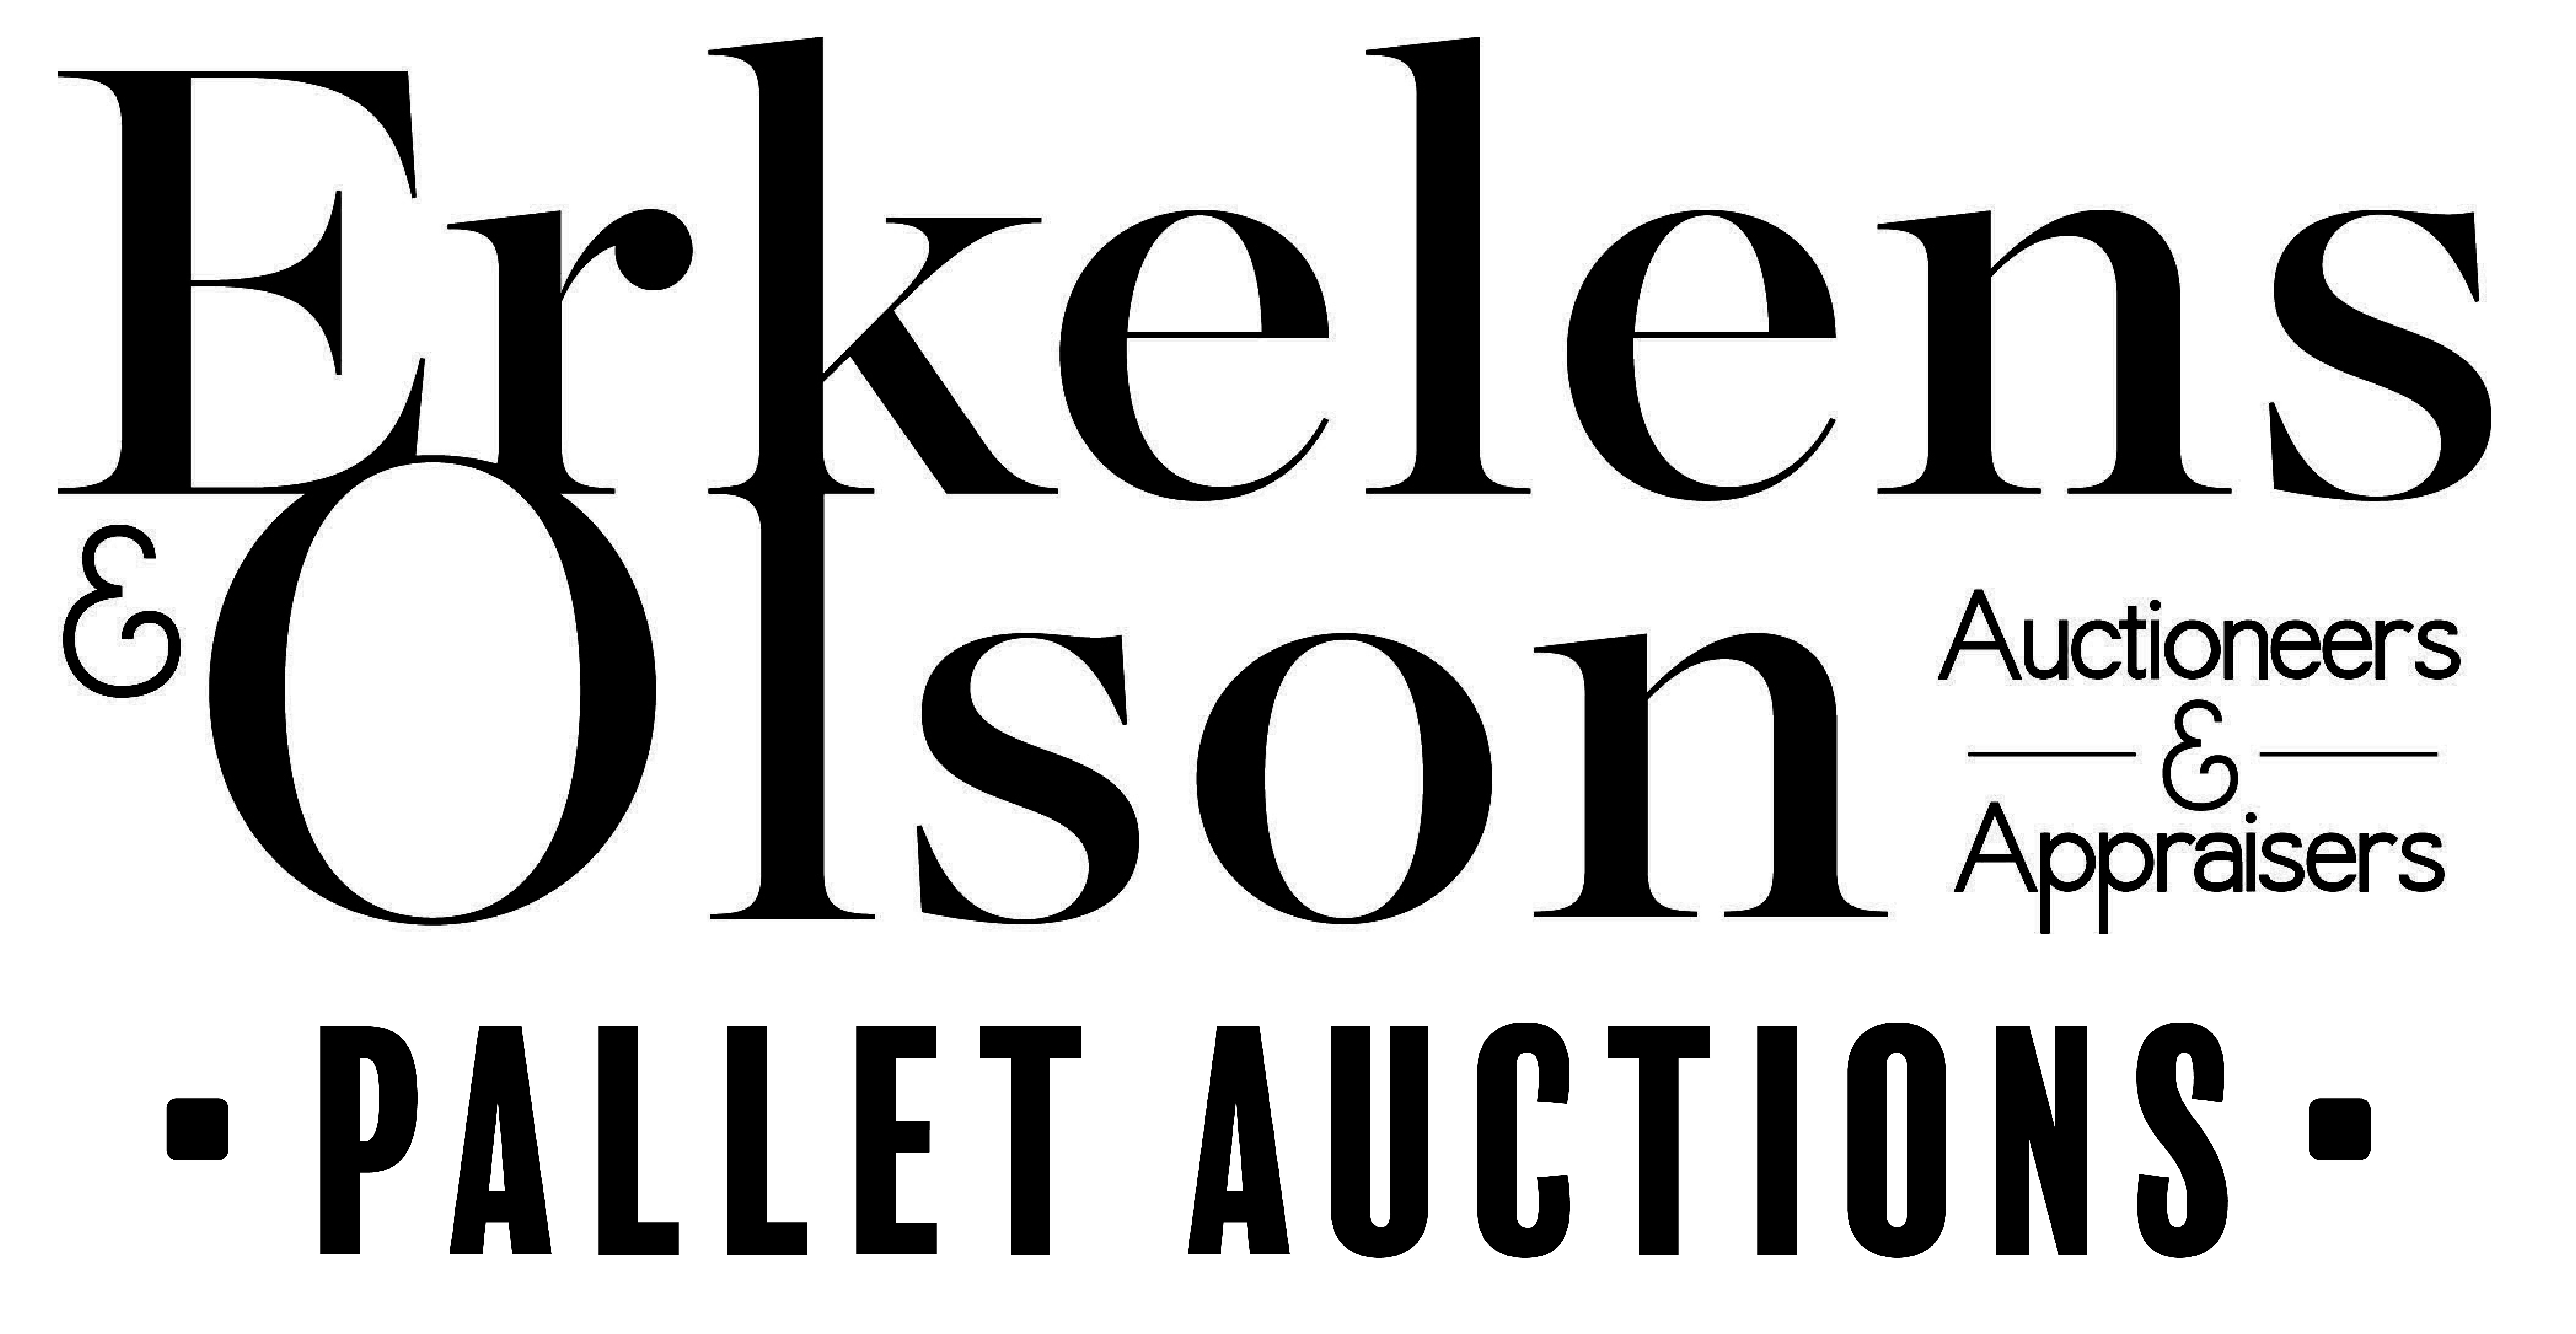 Sales and Auction